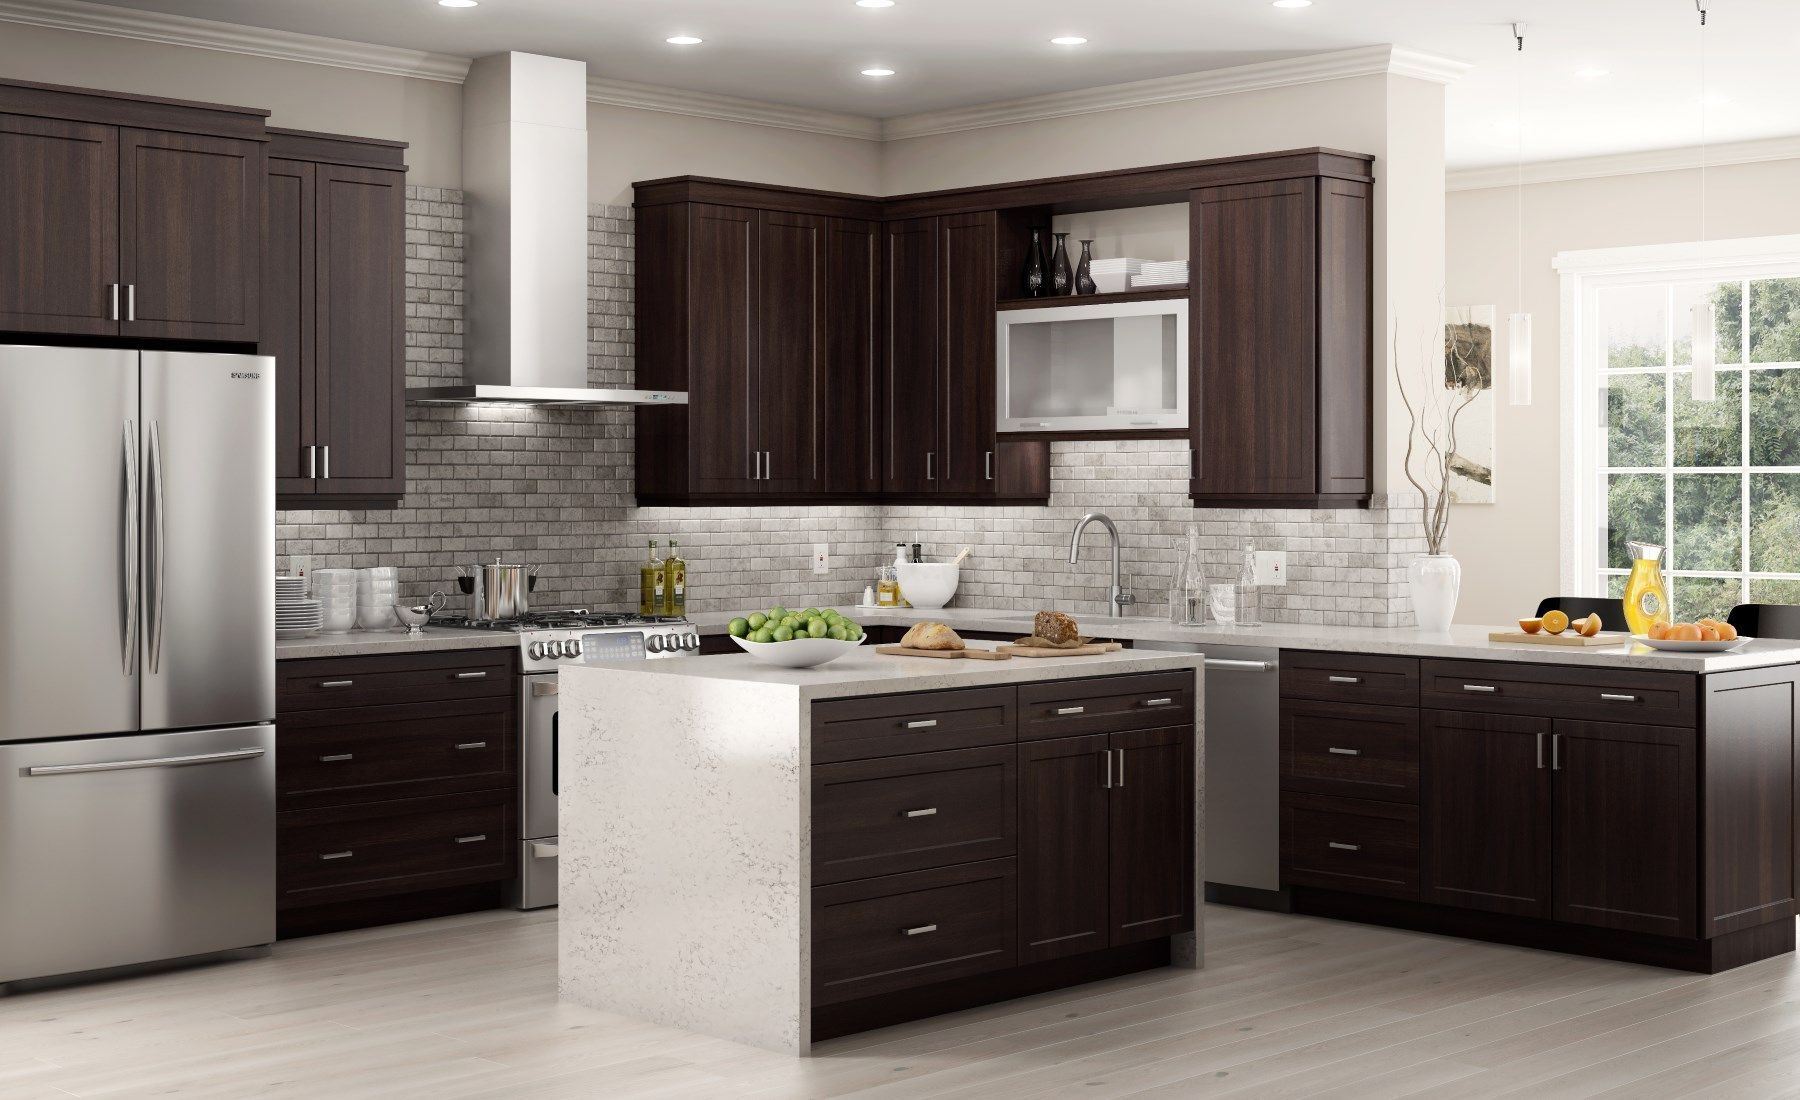 Gallery Hampton Bay Designer Series Designer Kitchen Cabinets Available At Home Depot Unfinished Kitchen Cabinets Home Depot Kitchen Kitchen Set Cabinet